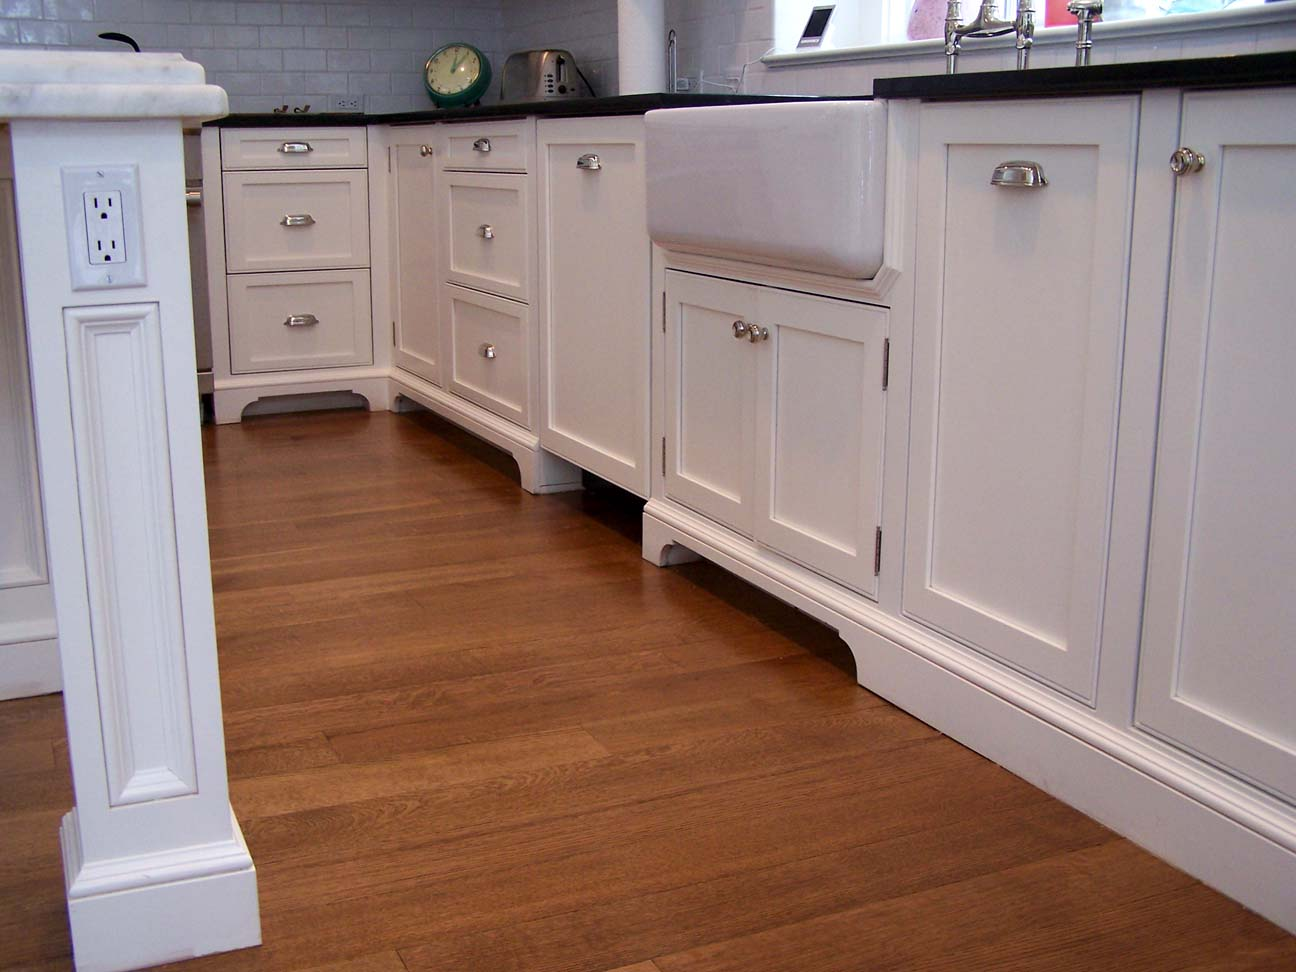 Image Source: Hudsoncabinetmaking.com